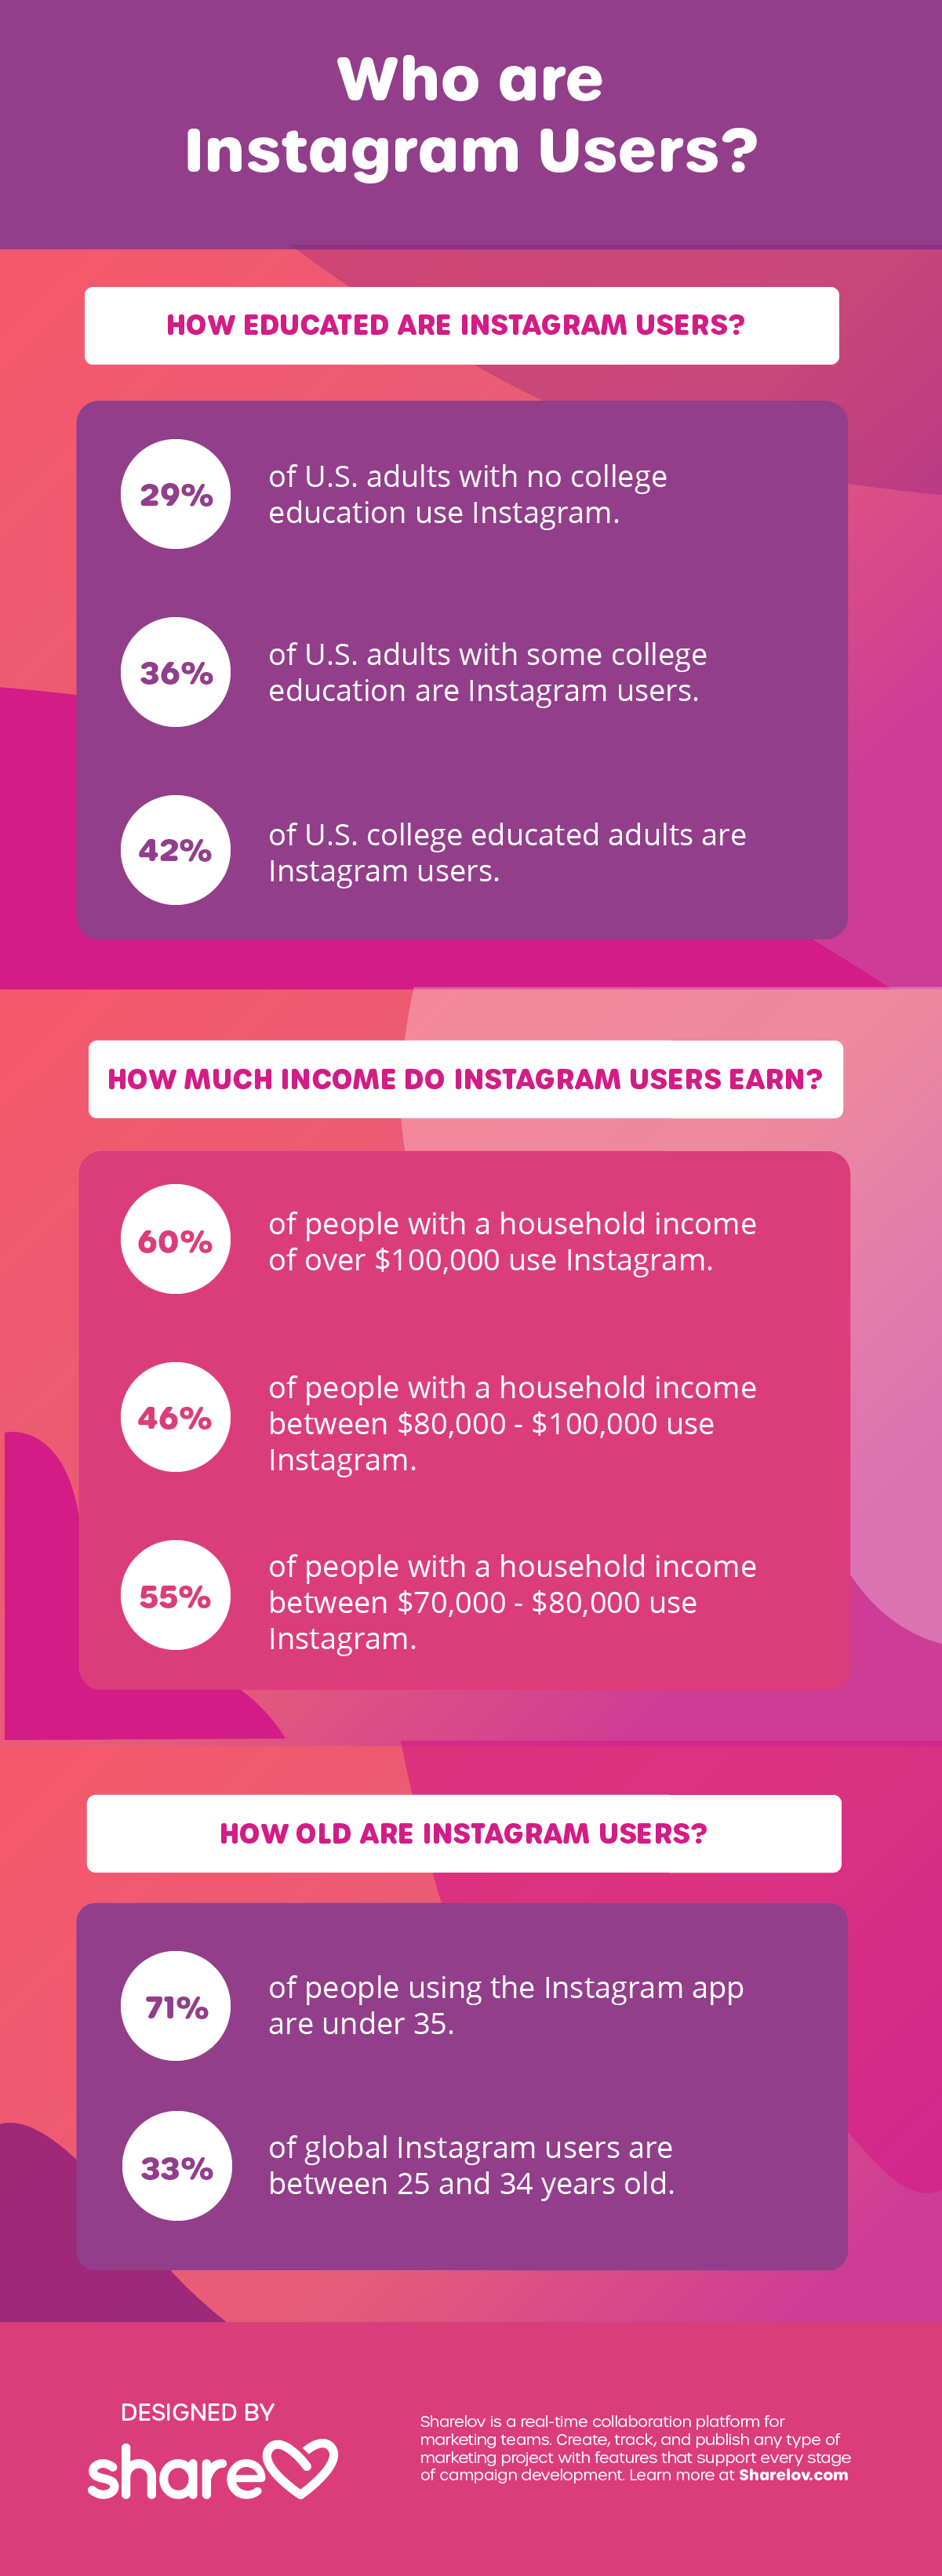 Who are Instagram Users infographic